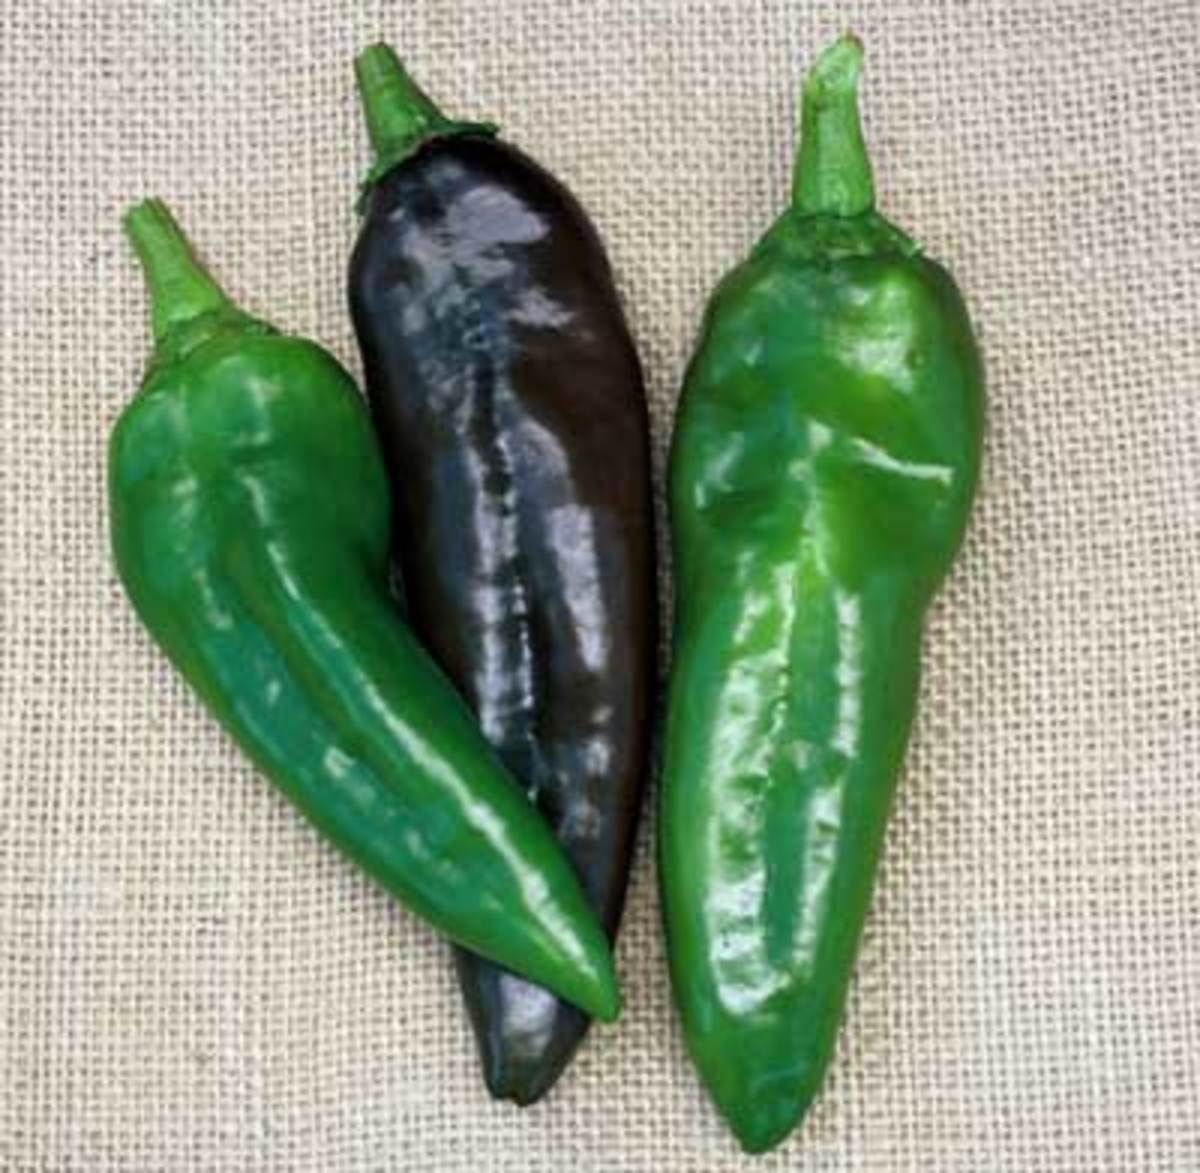 Ahaheim, also know as the New Mexican chile, this moderately pungent fruit is deep green, but turns red at full maturity. Very smooth peppers are 7 1/2 inches long and 2 inches wide and borne on tall, productive plants that offer good foliage cover.